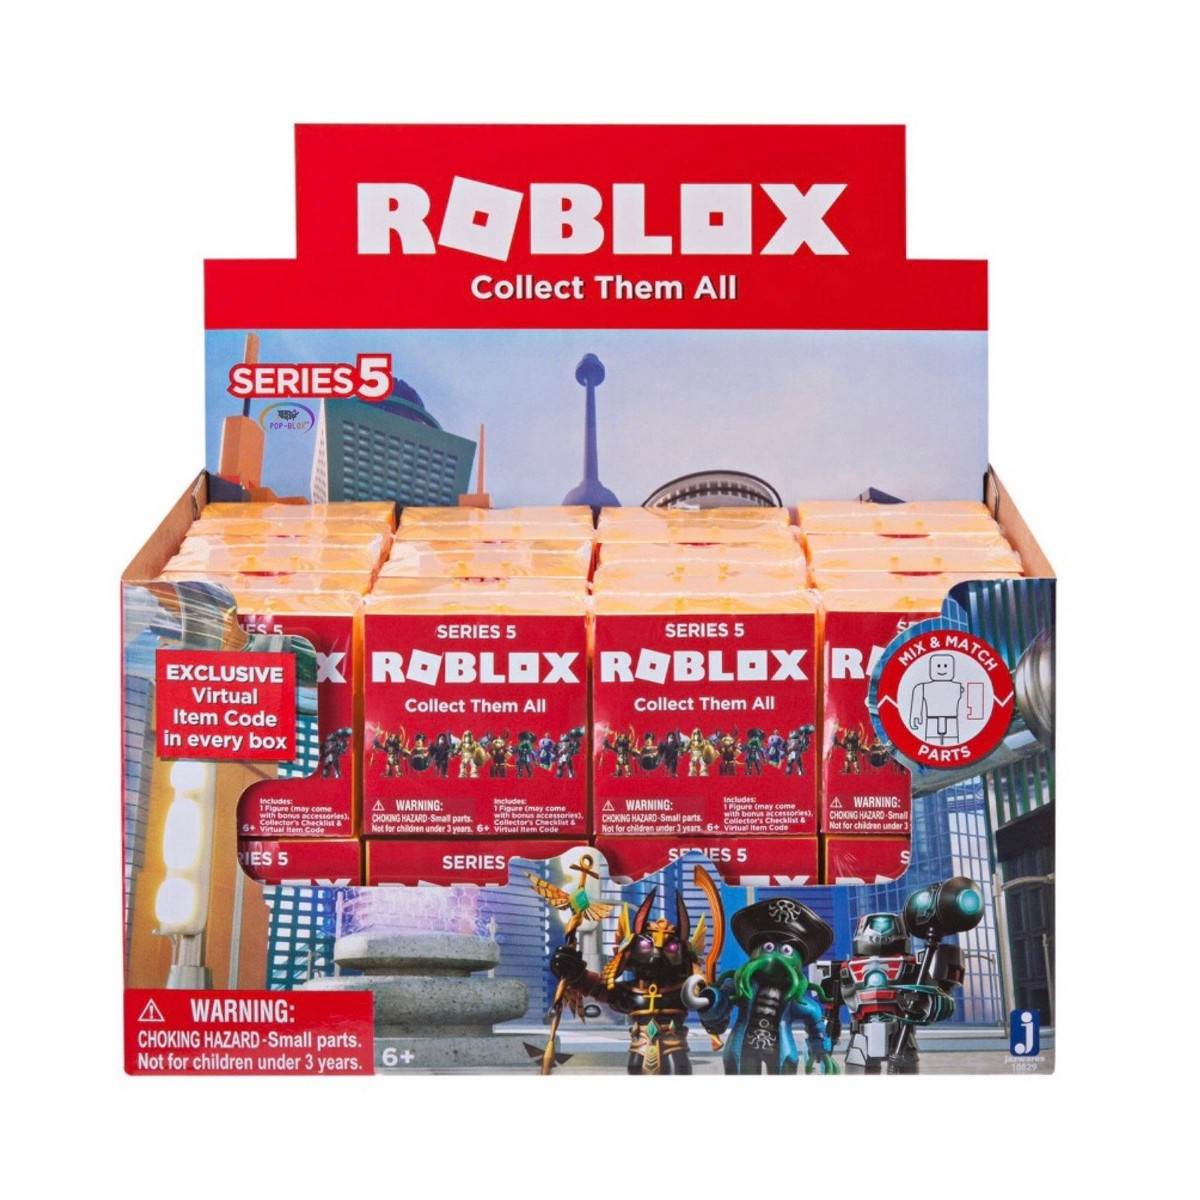 Roblox Mystery Box Series 3 - Roblox Mystery Box Series 5